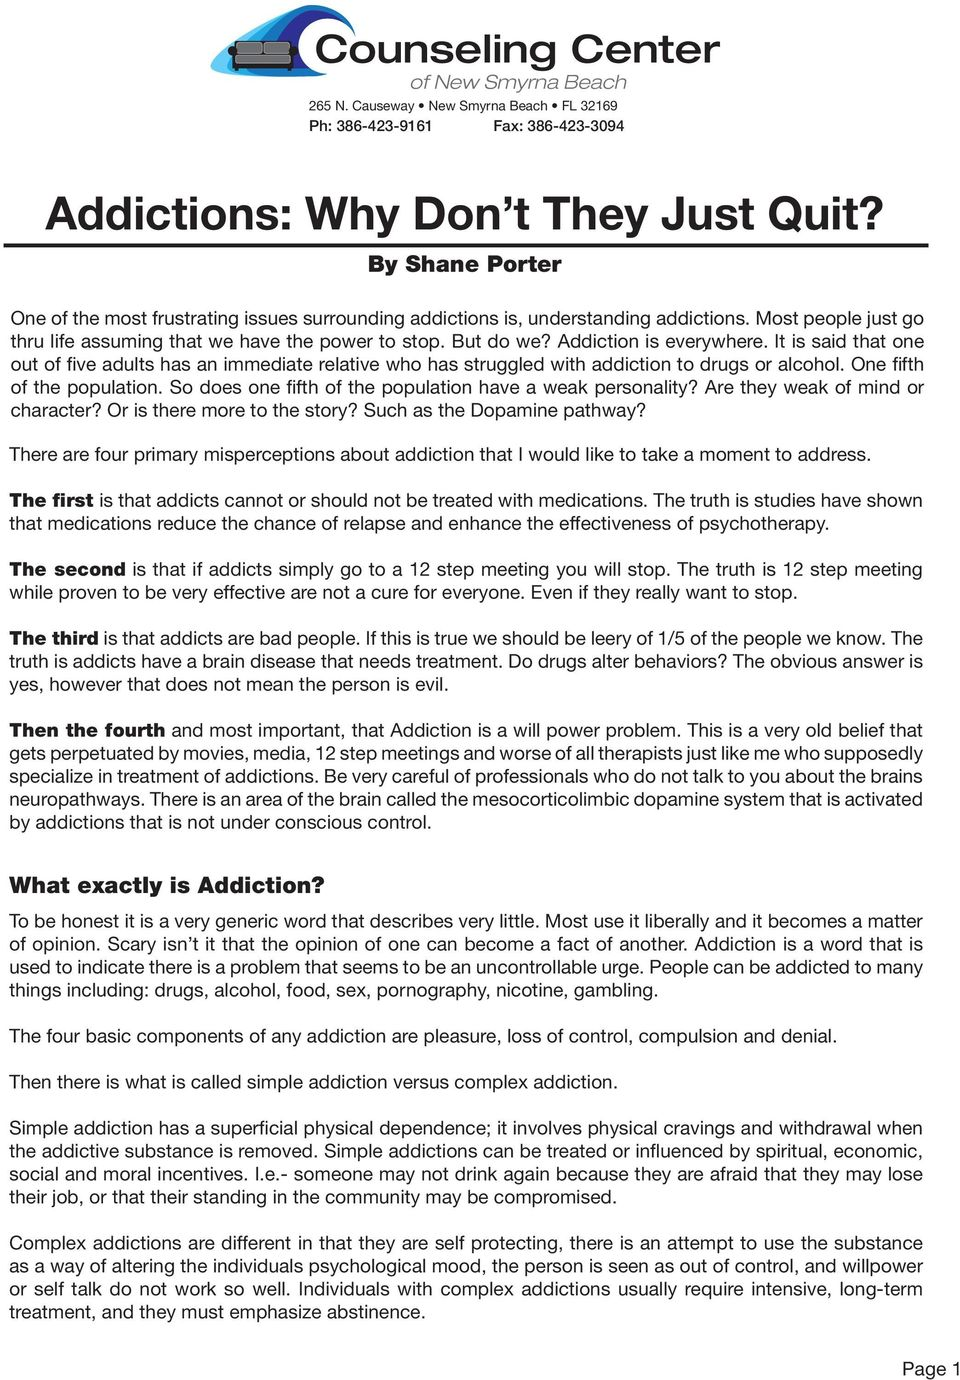 Addiction is everywhere. It is said that one out of five adults has an immediate relative who has struggled with addiction to drugs or alcohol. One fifth of the population.